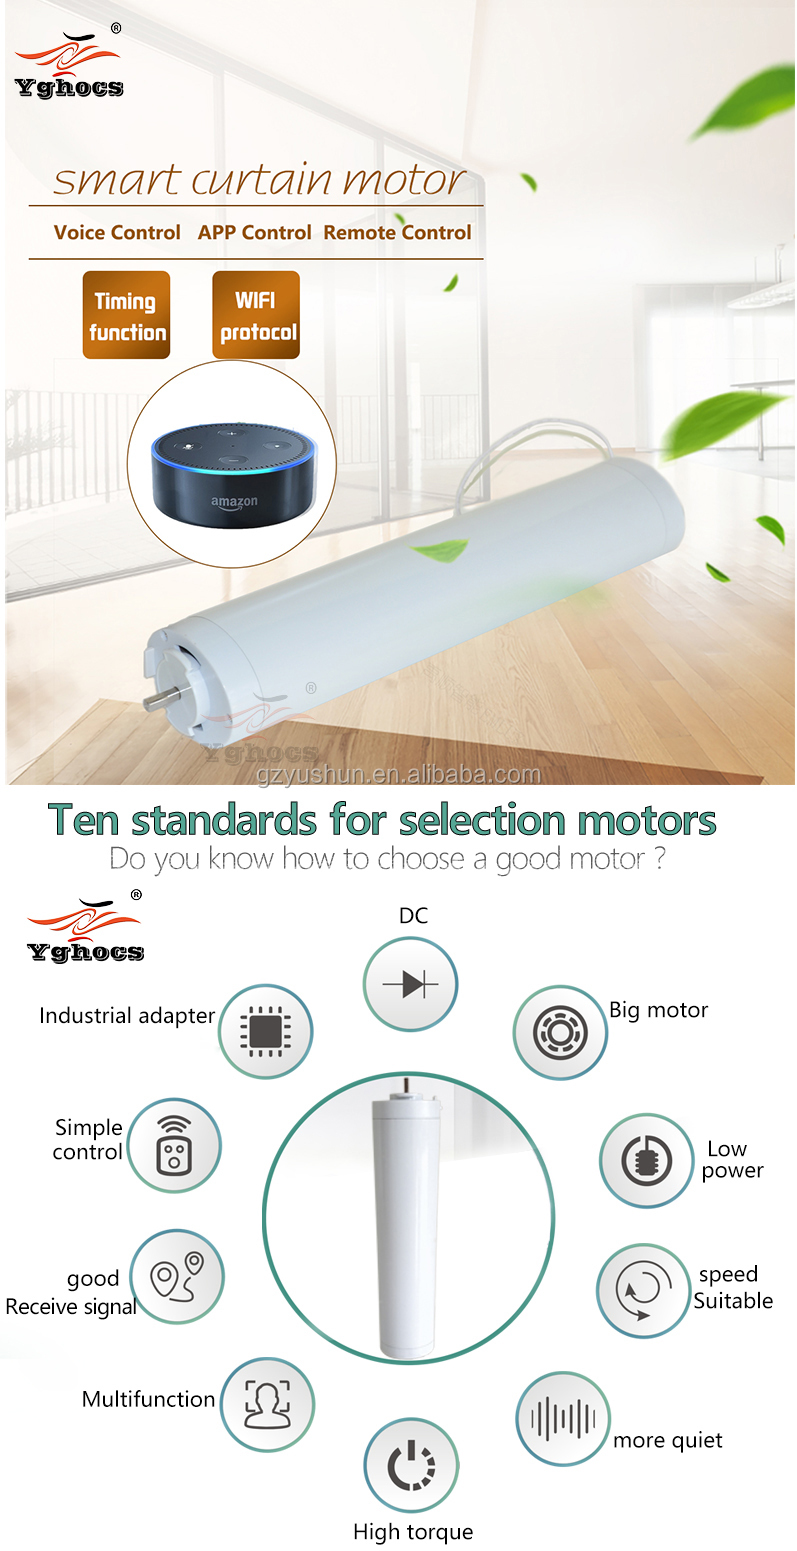 super quiet automatic curtain system 50/60Hz DC curtain motor , Smart Home System tuya wifi curtain motor